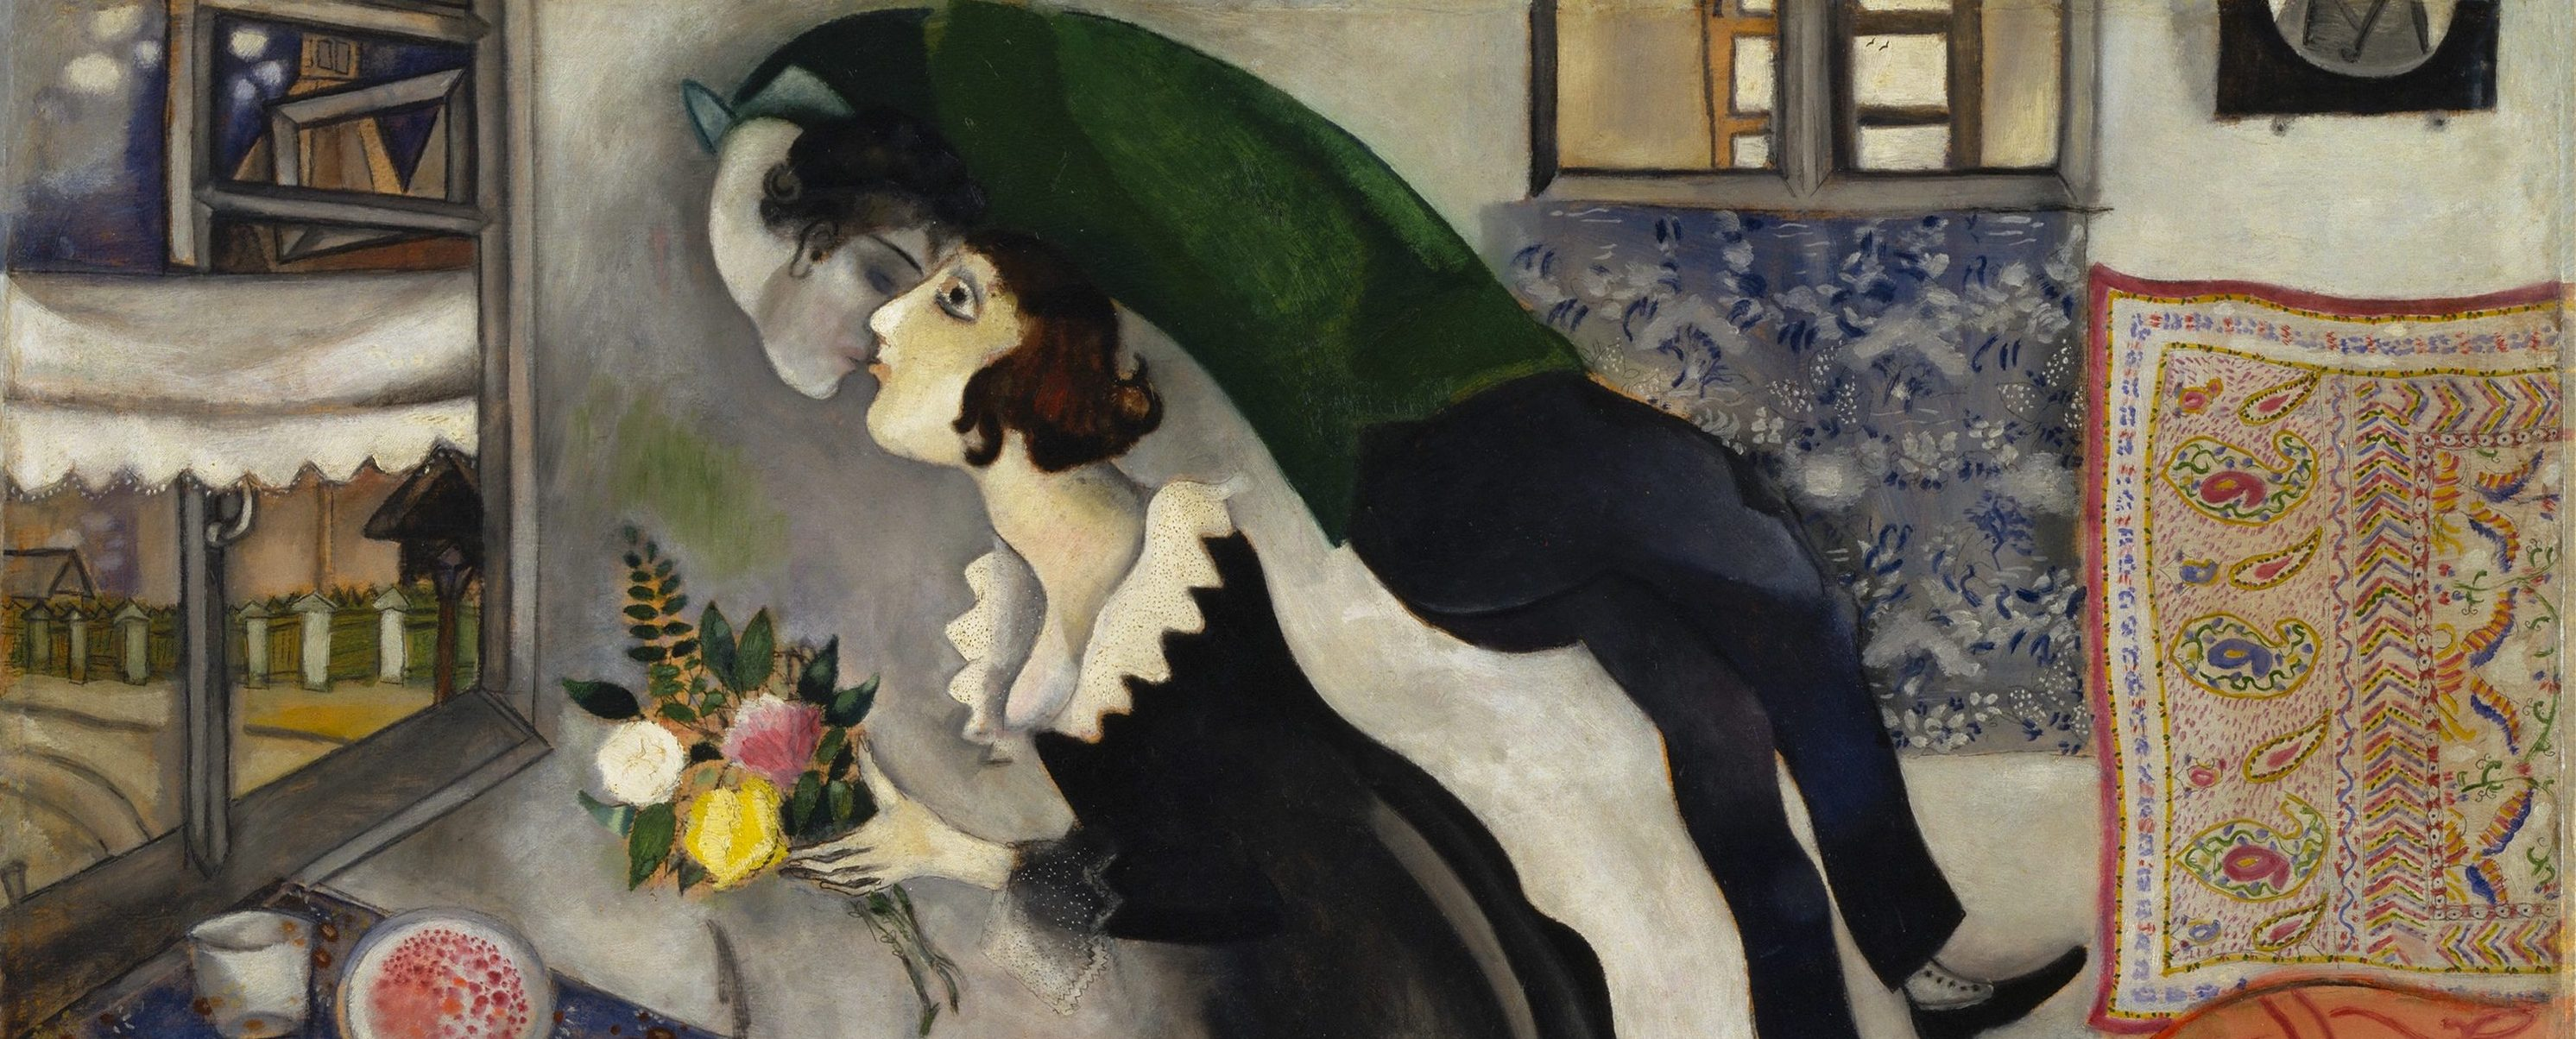 Chagall, Marc (1887-1985): Birthday, 1915 New York Museum of Modern Art (MoMA) *** Permission for usage must be provided in writing from Scala.